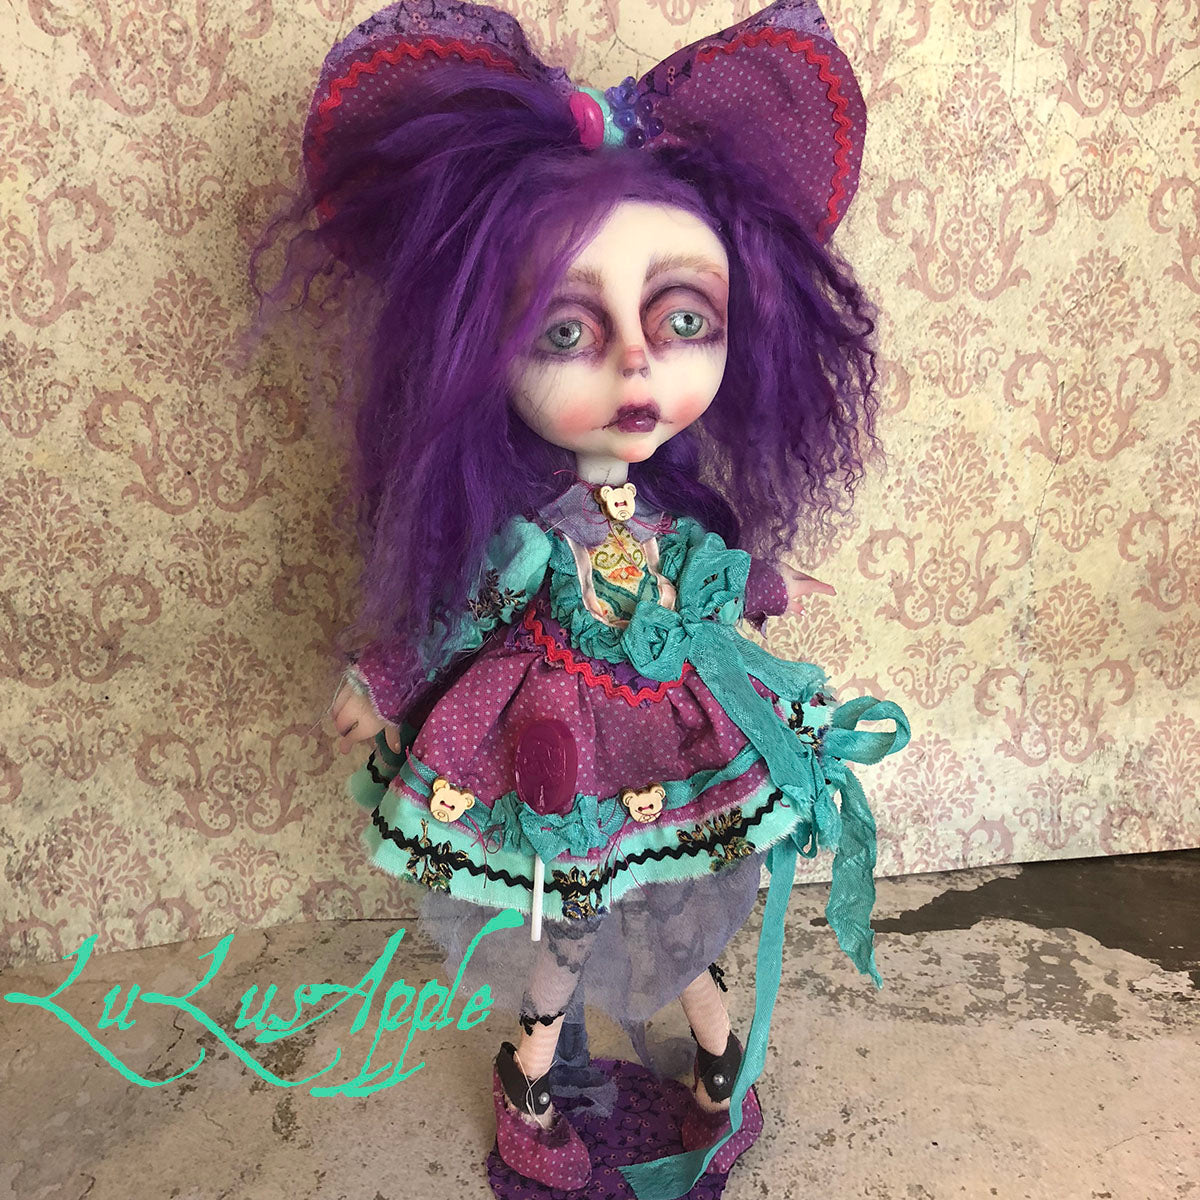 Daphne Candy Girl Gothic Lolita sadness OOAK LuLusApple Art Doll